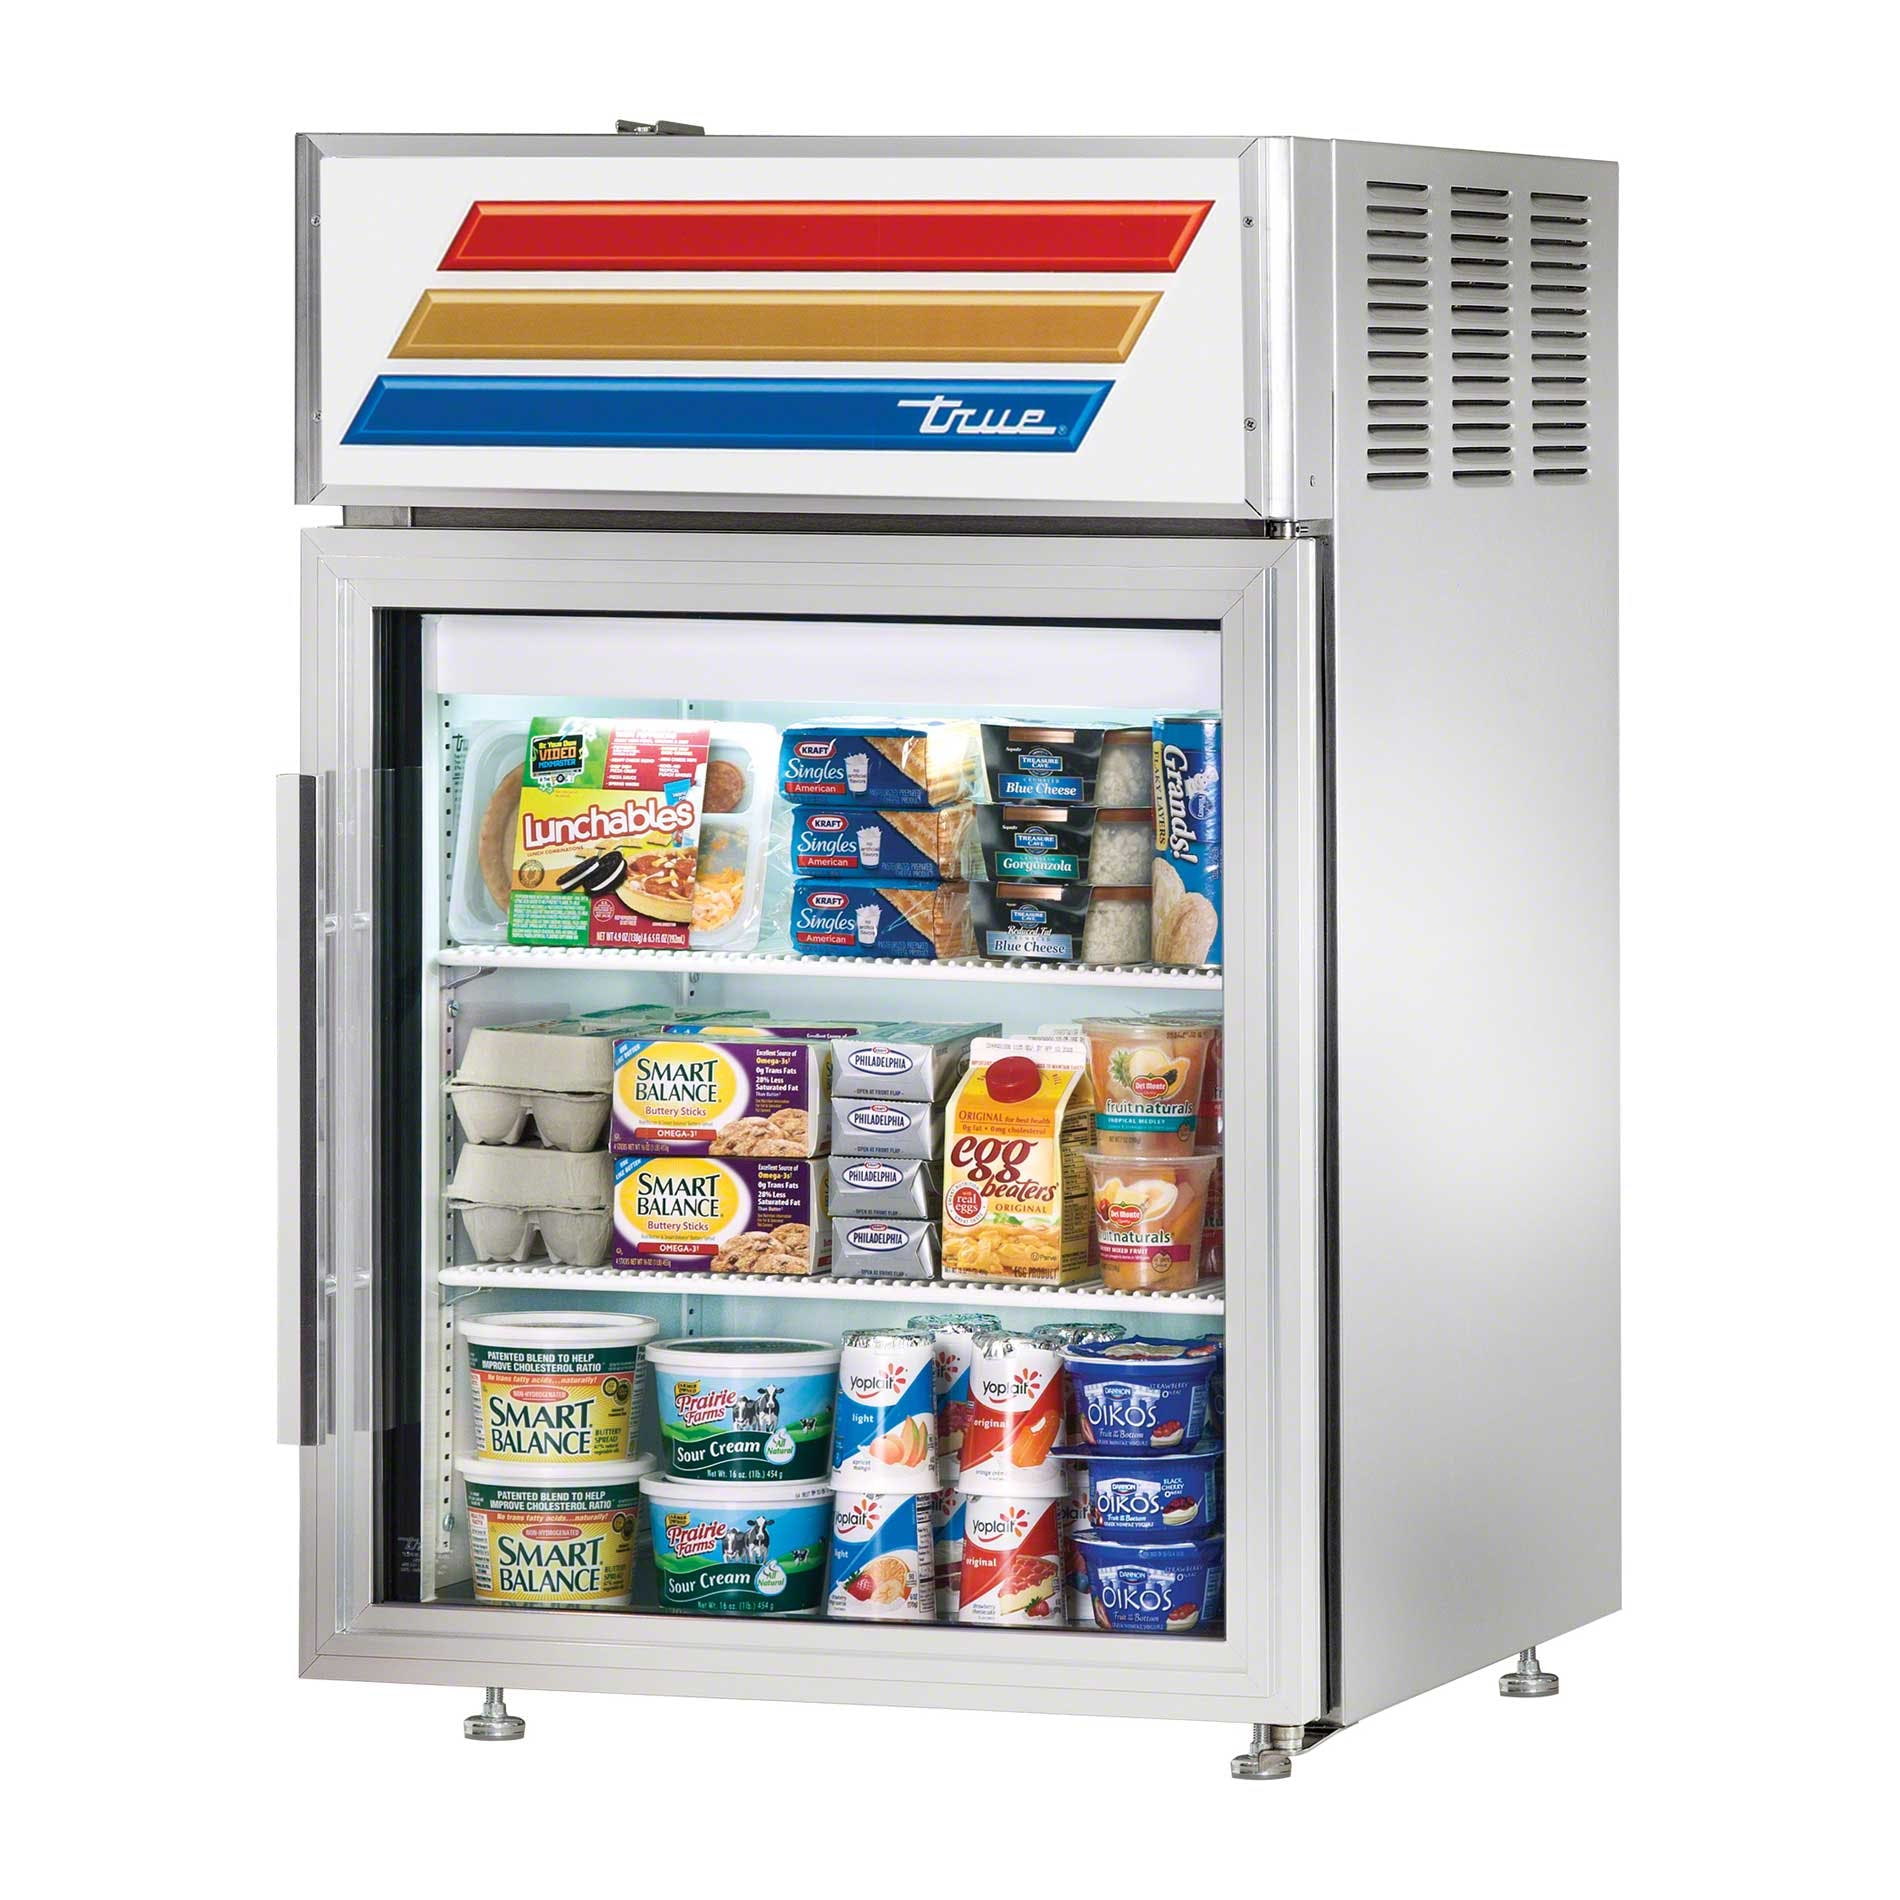 "True - GDM-5-S-LD 24"" Countertop Glass Door Merchandiser Refrigerator LED Commercial refrigerator sold by Food Service Warehouse"